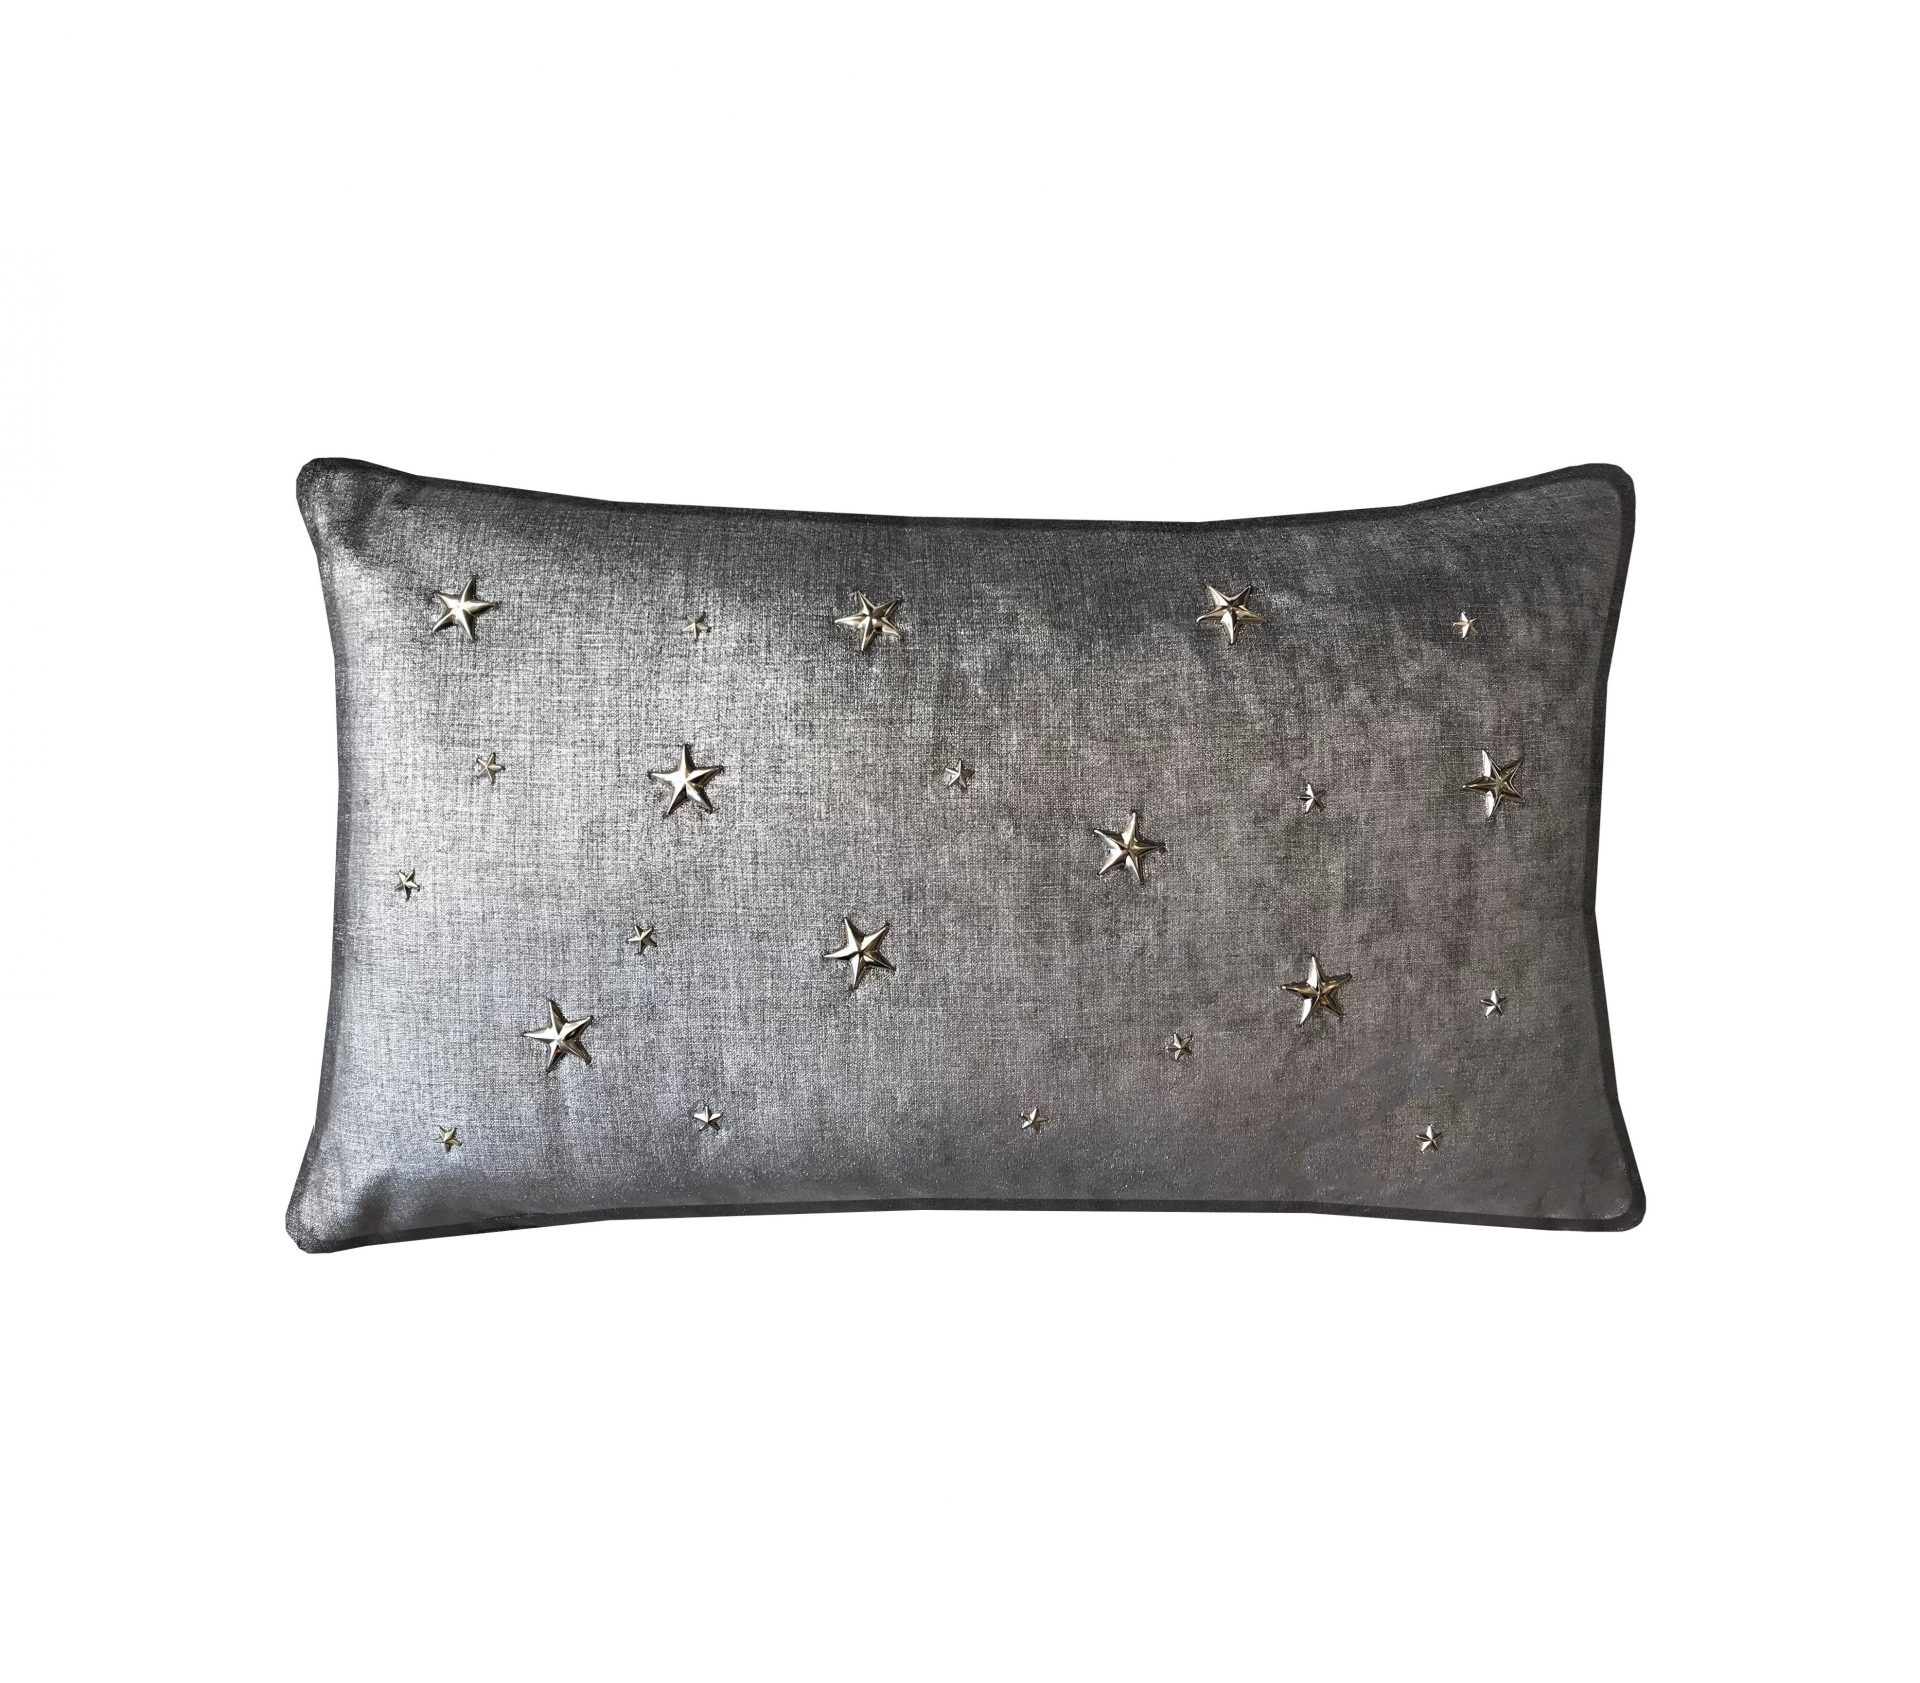 Graphite throw pillow with metal stars.